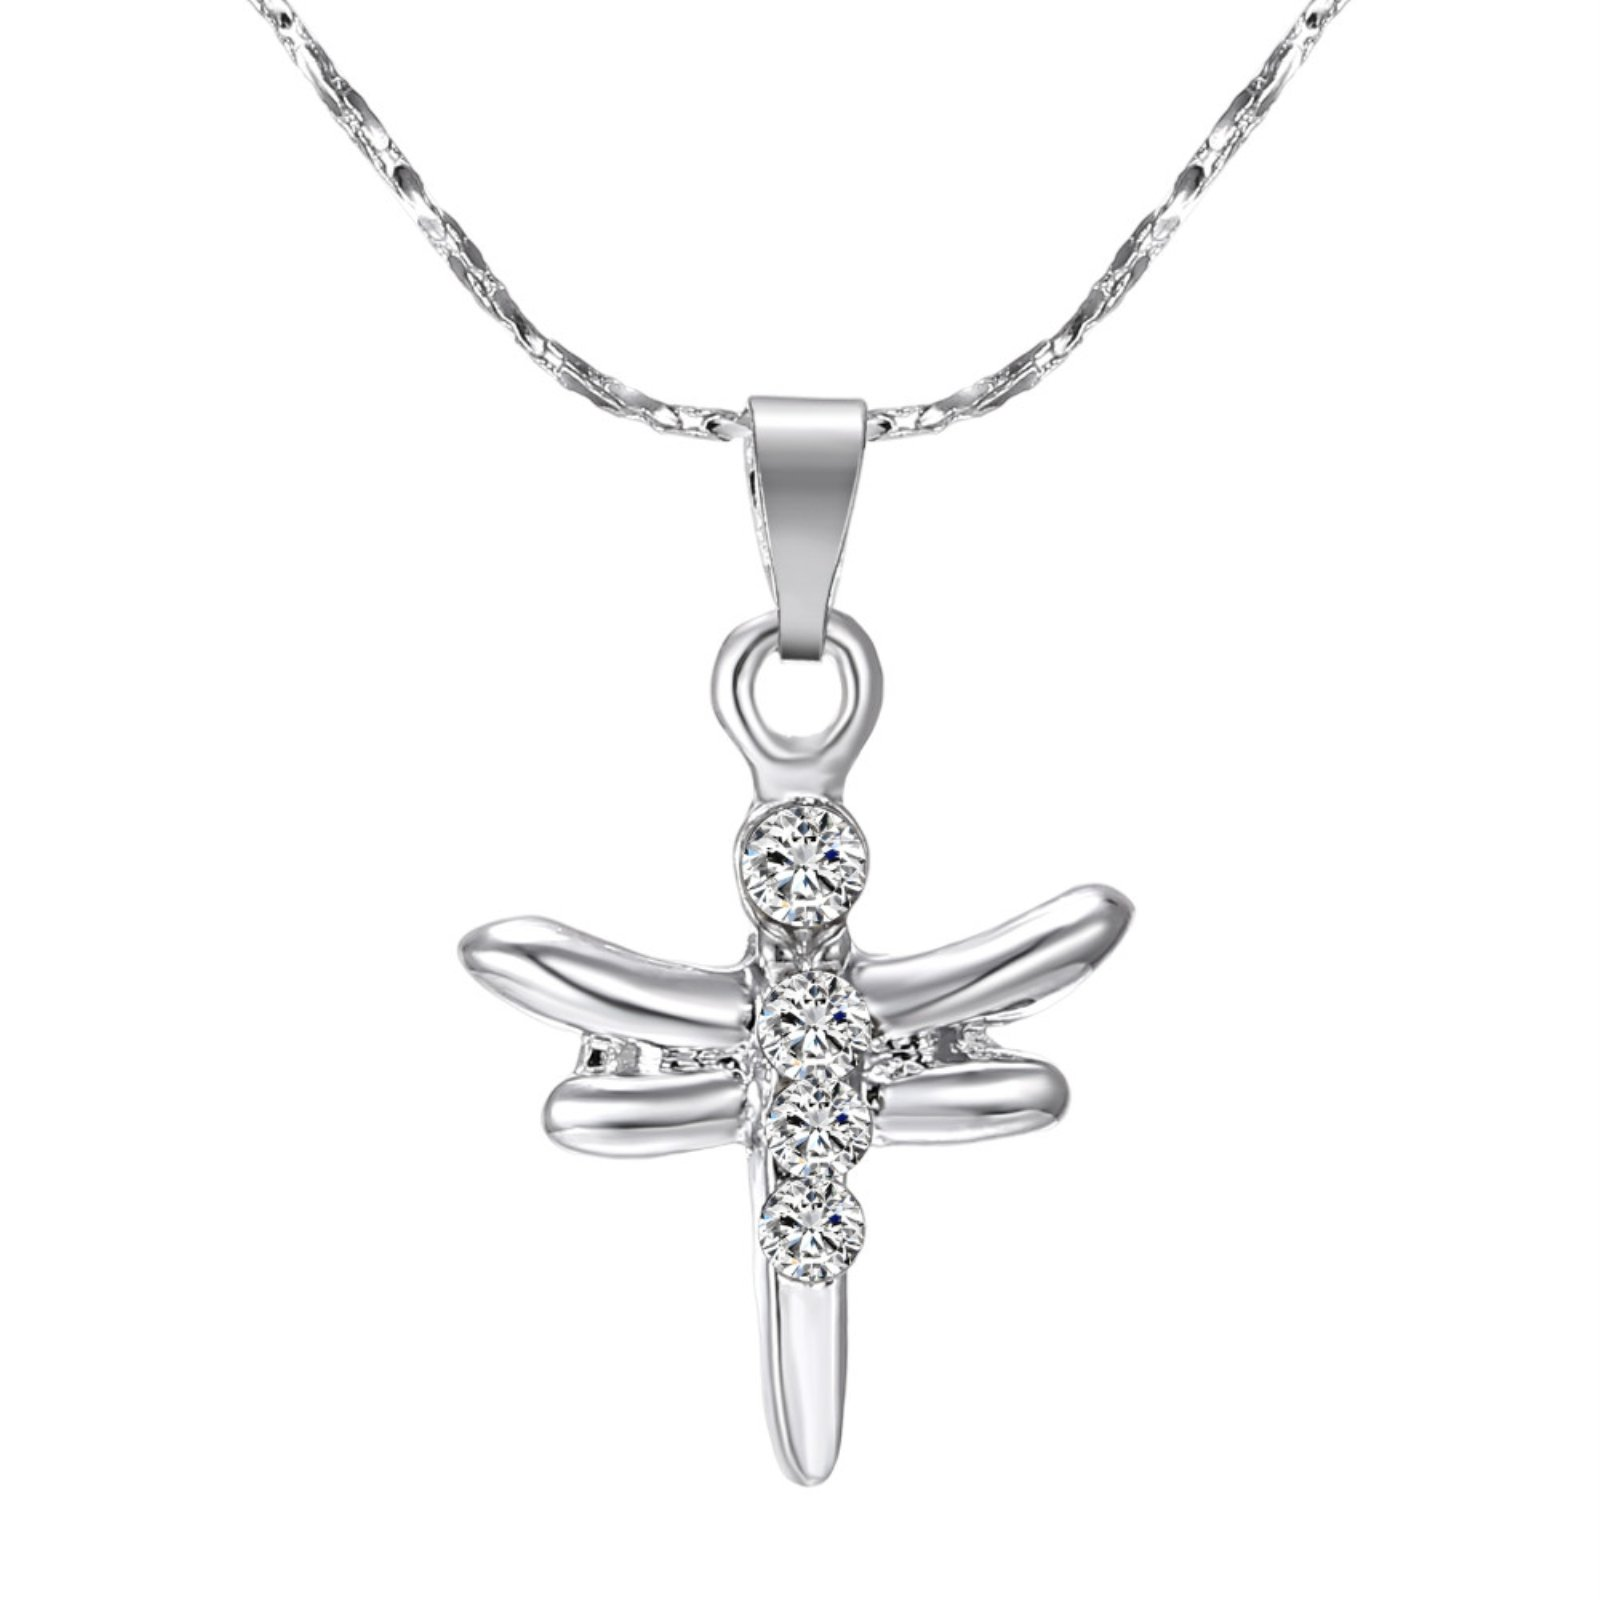 ptk12 Hot Sale Rhodium Plated Animal Dragonfly Pendants Necklaces with AAA Austrian Crystal